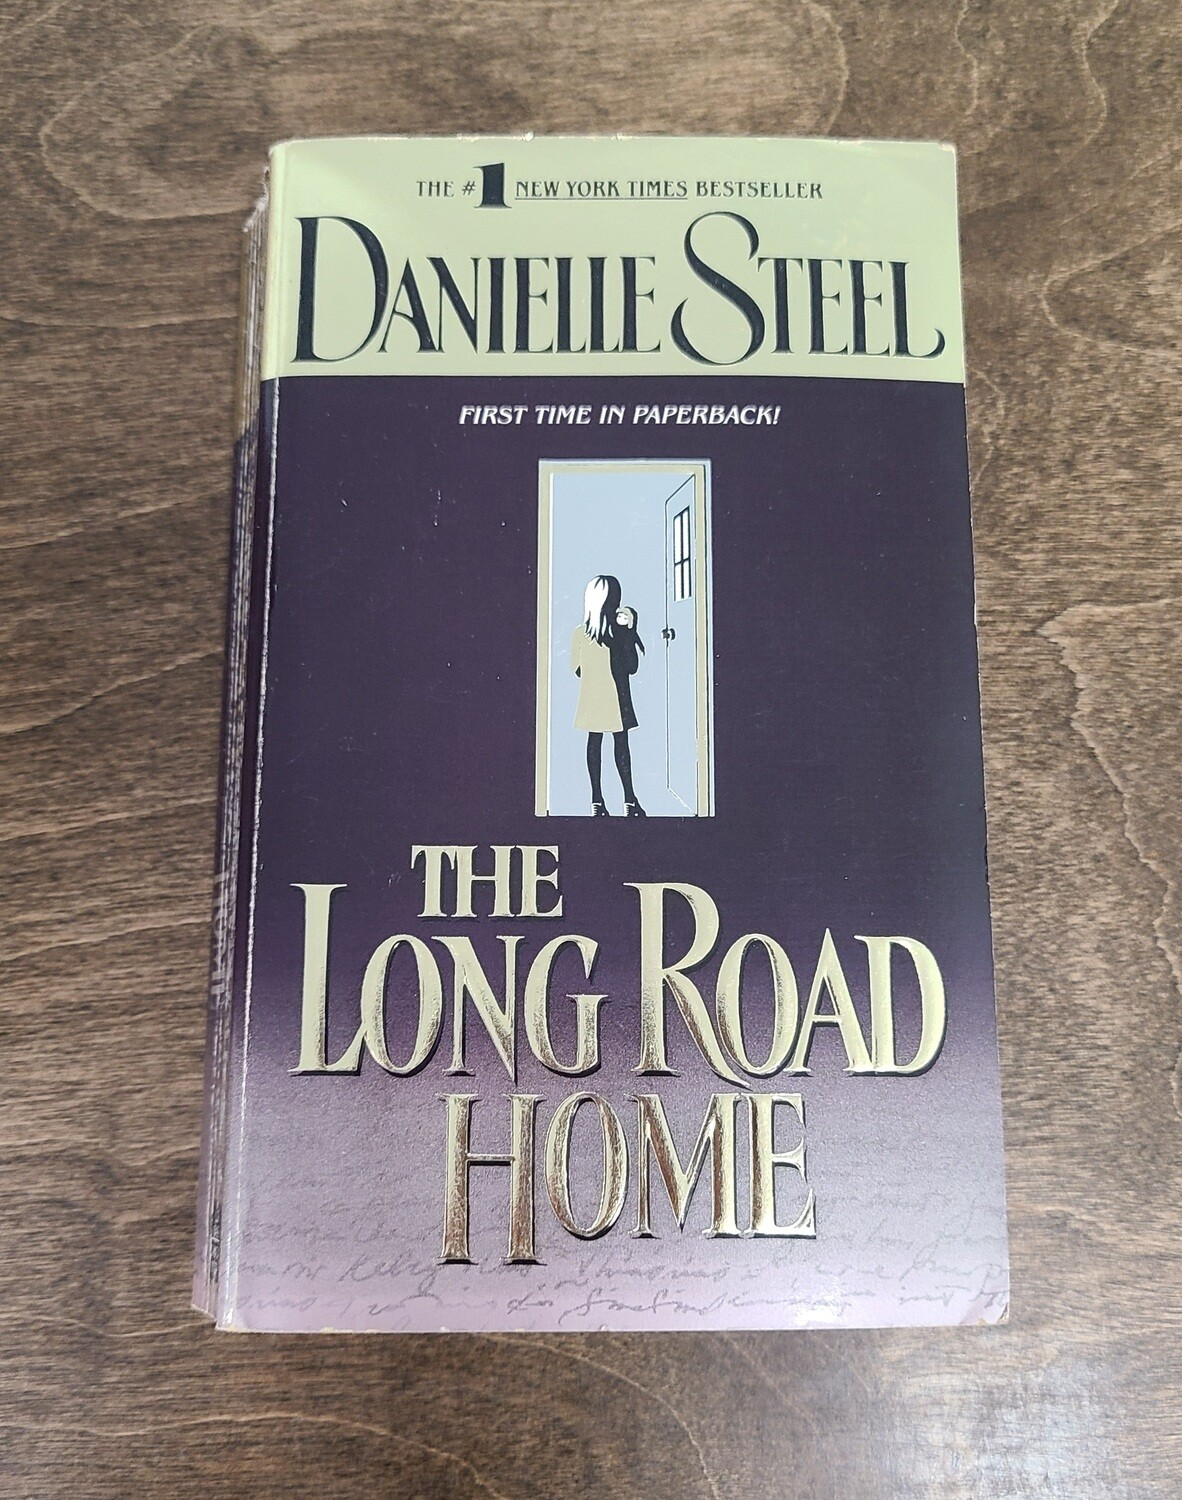 The Long Road Home by Danielle Steel - Paperback